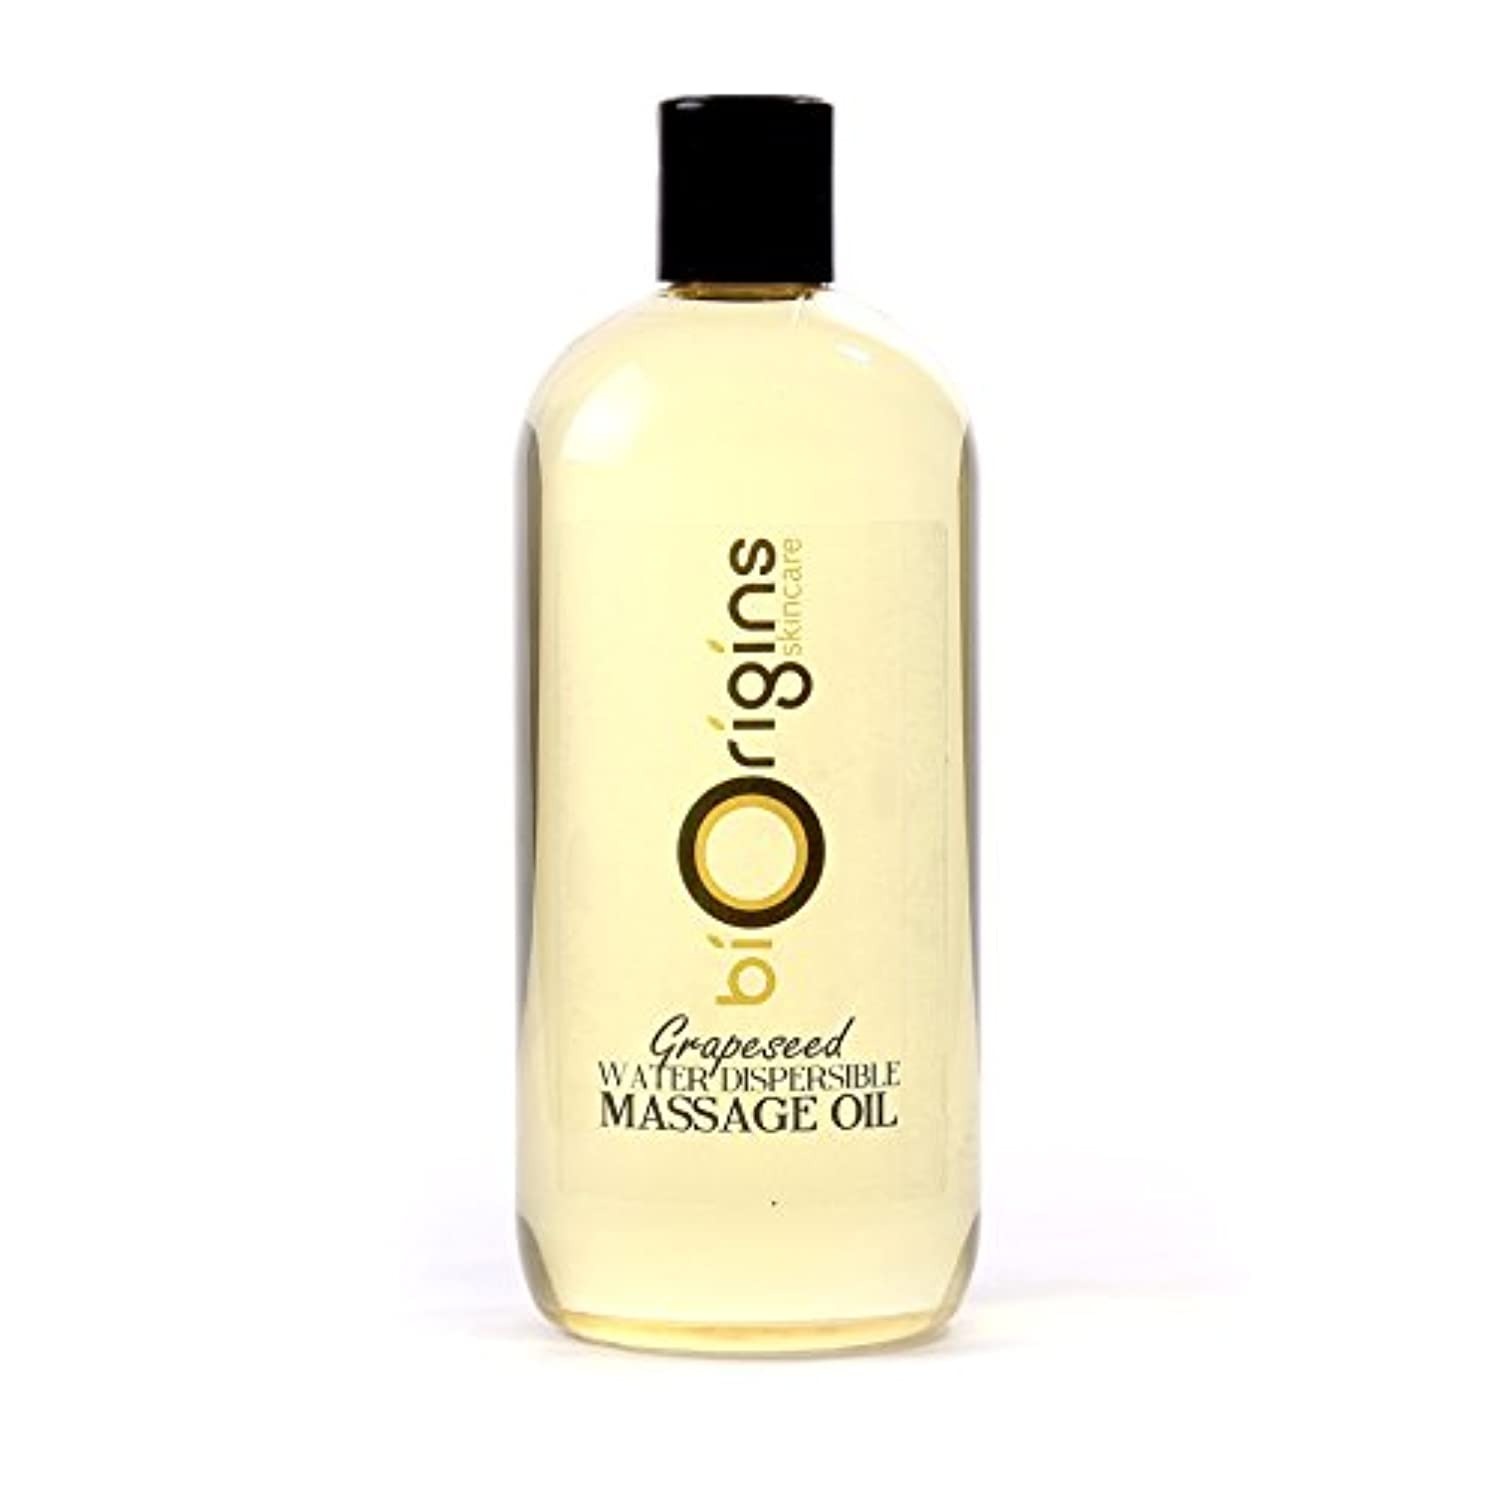 放散する結婚式印象派Grapeseed Water Dispersible Massage Oil - 500ml - 100% Pure